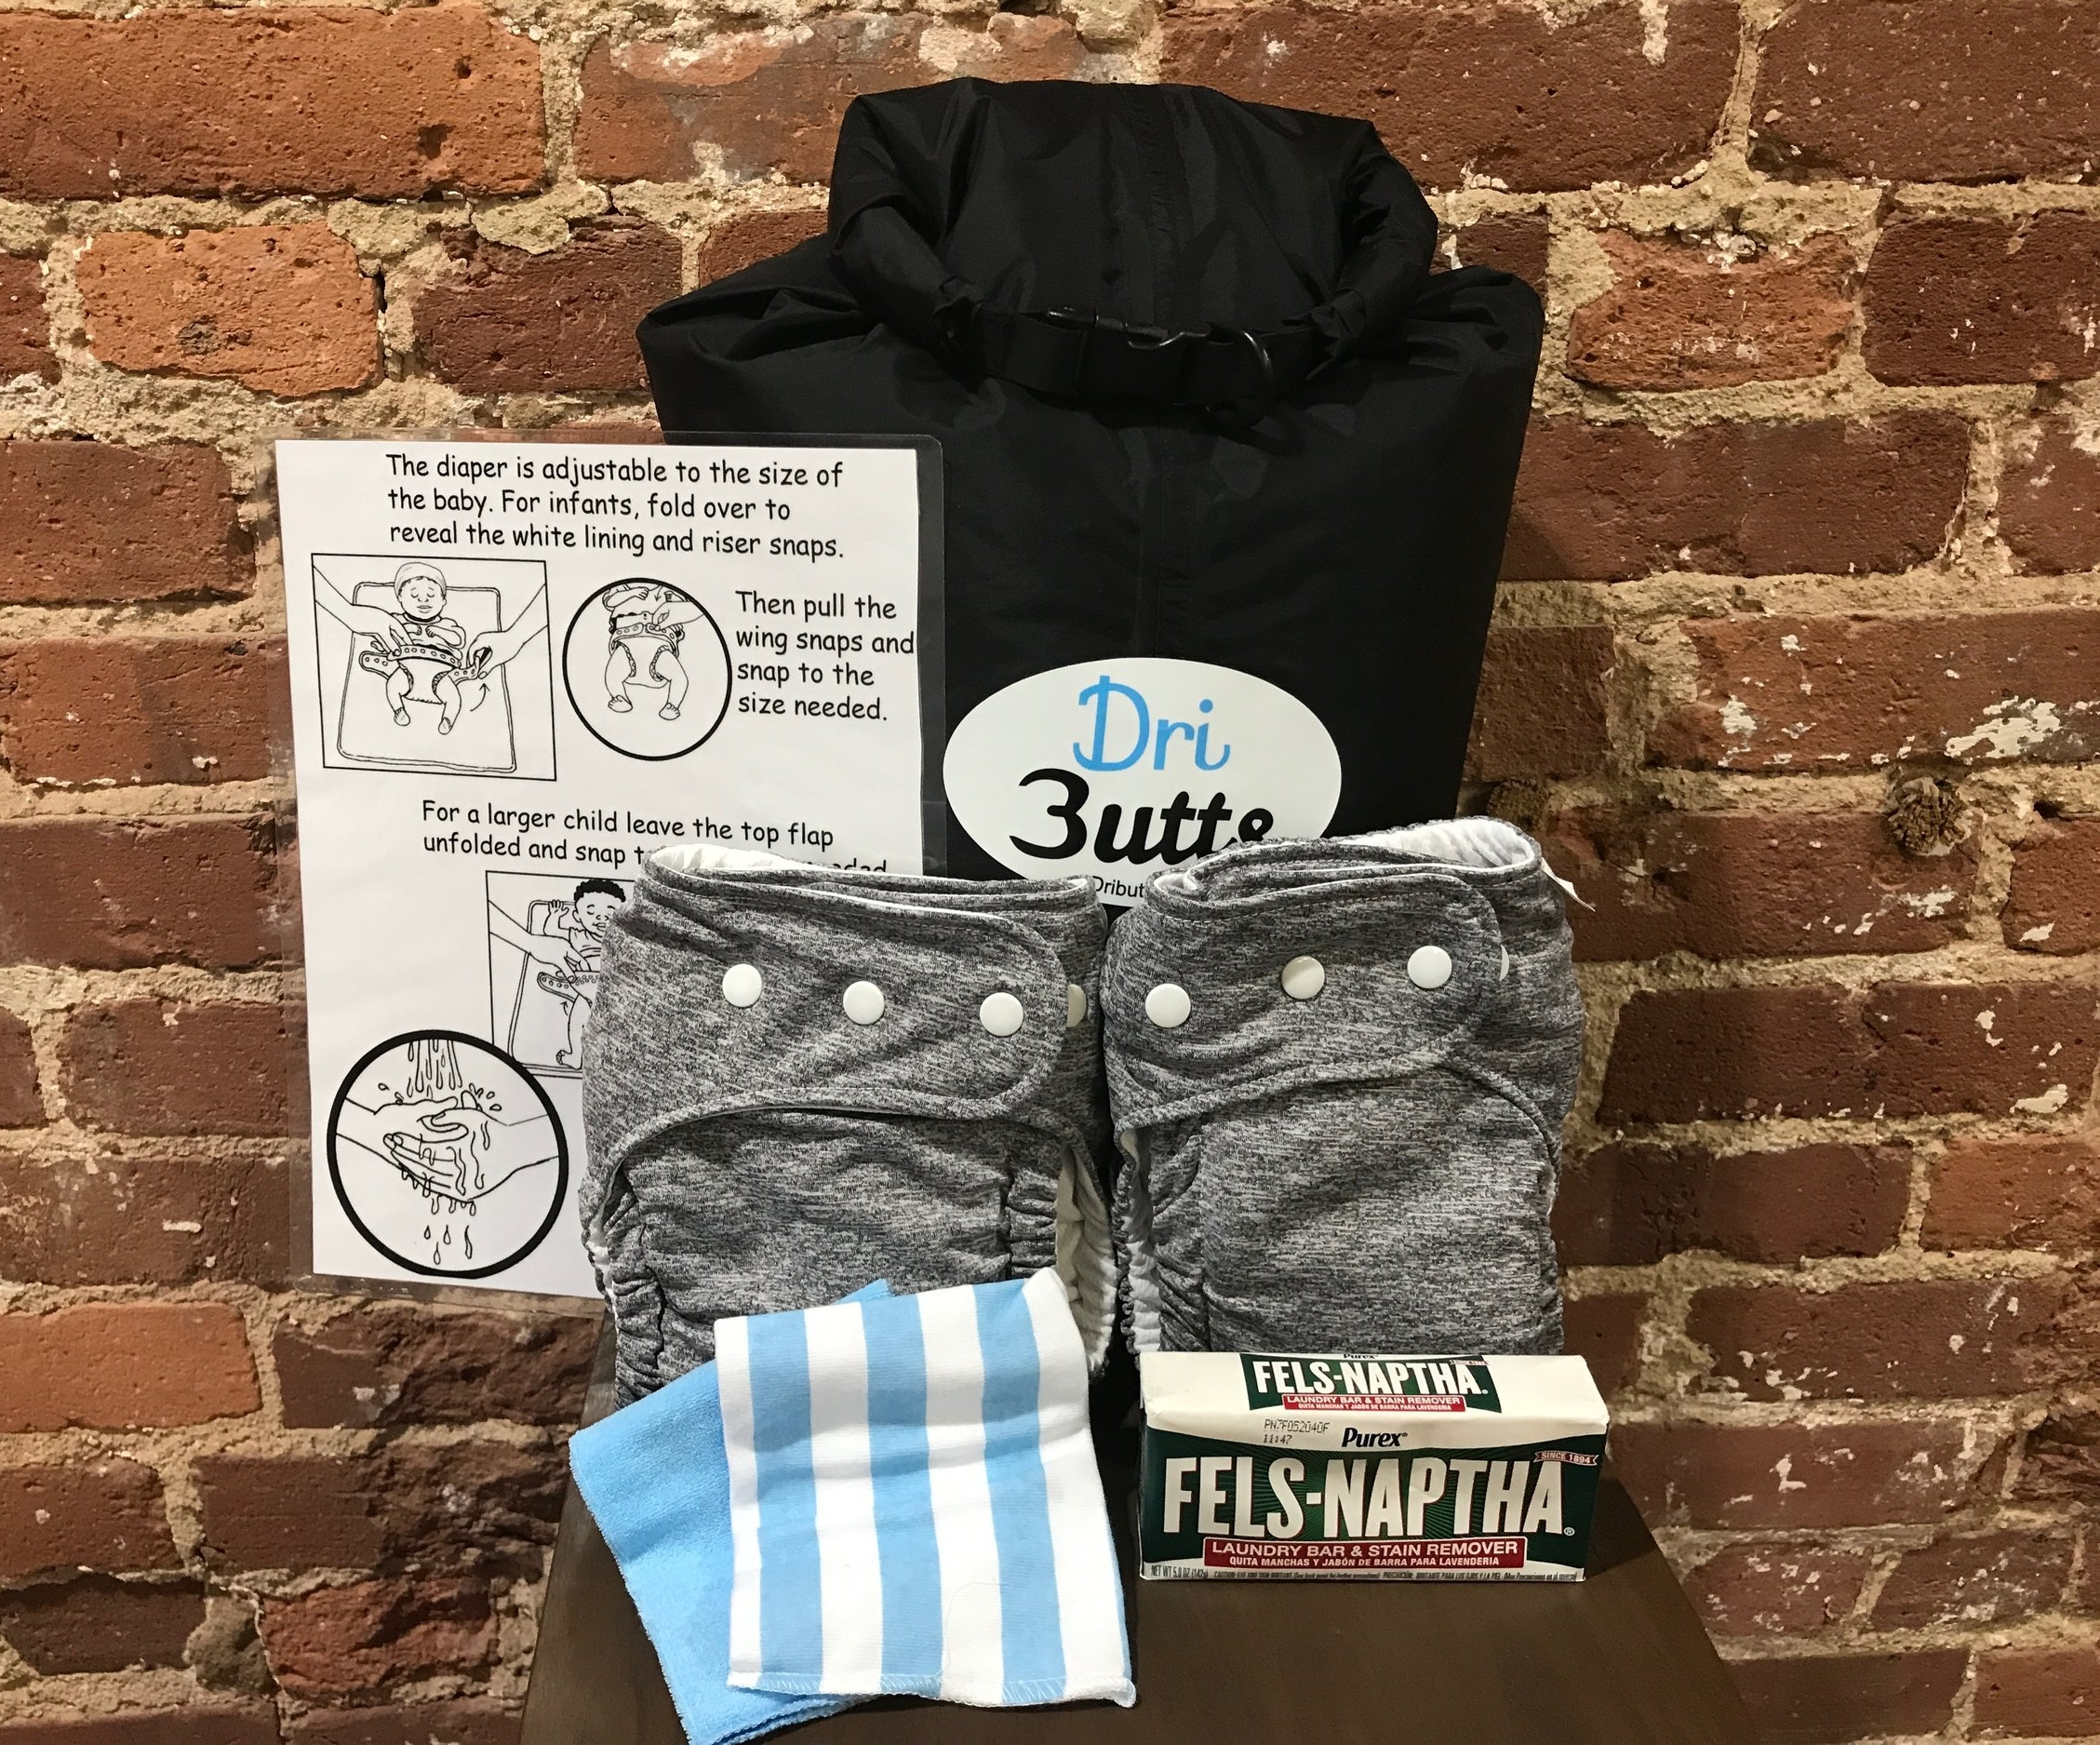 Each pack is a donation of $40 and will consist of the following: - - 2 DriButts Diapers- 1 5L Dry Bag- 1 Bar of Laundry Soap- 2 Wash Cloths- 1 Laminated Instruction Card